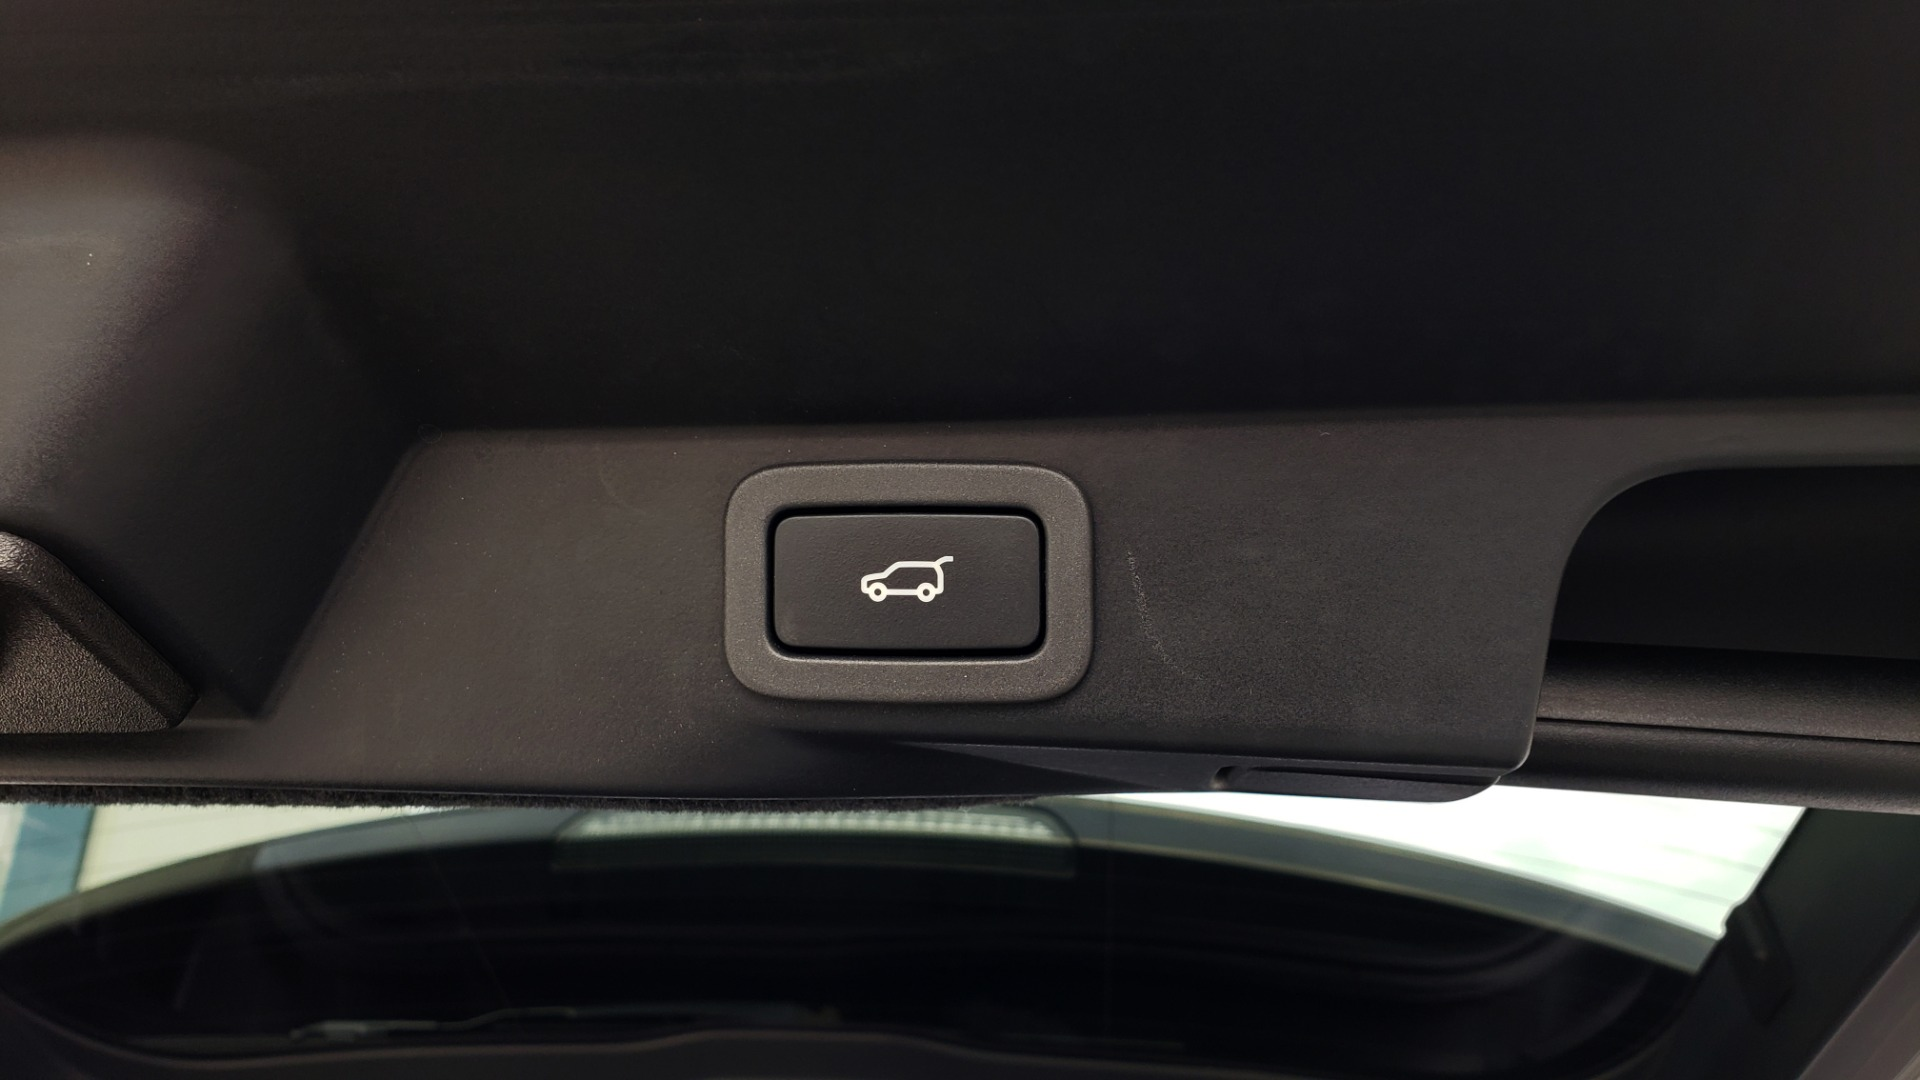 Used 2017 Land Rover RANGE ROVER SPORT HSE DYNAMIC / SC V6 / NAV / MERIDIAN / PANO-ROOF / REARVIEW for sale Sold at Formula Imports in Charlotte NC 28227 122